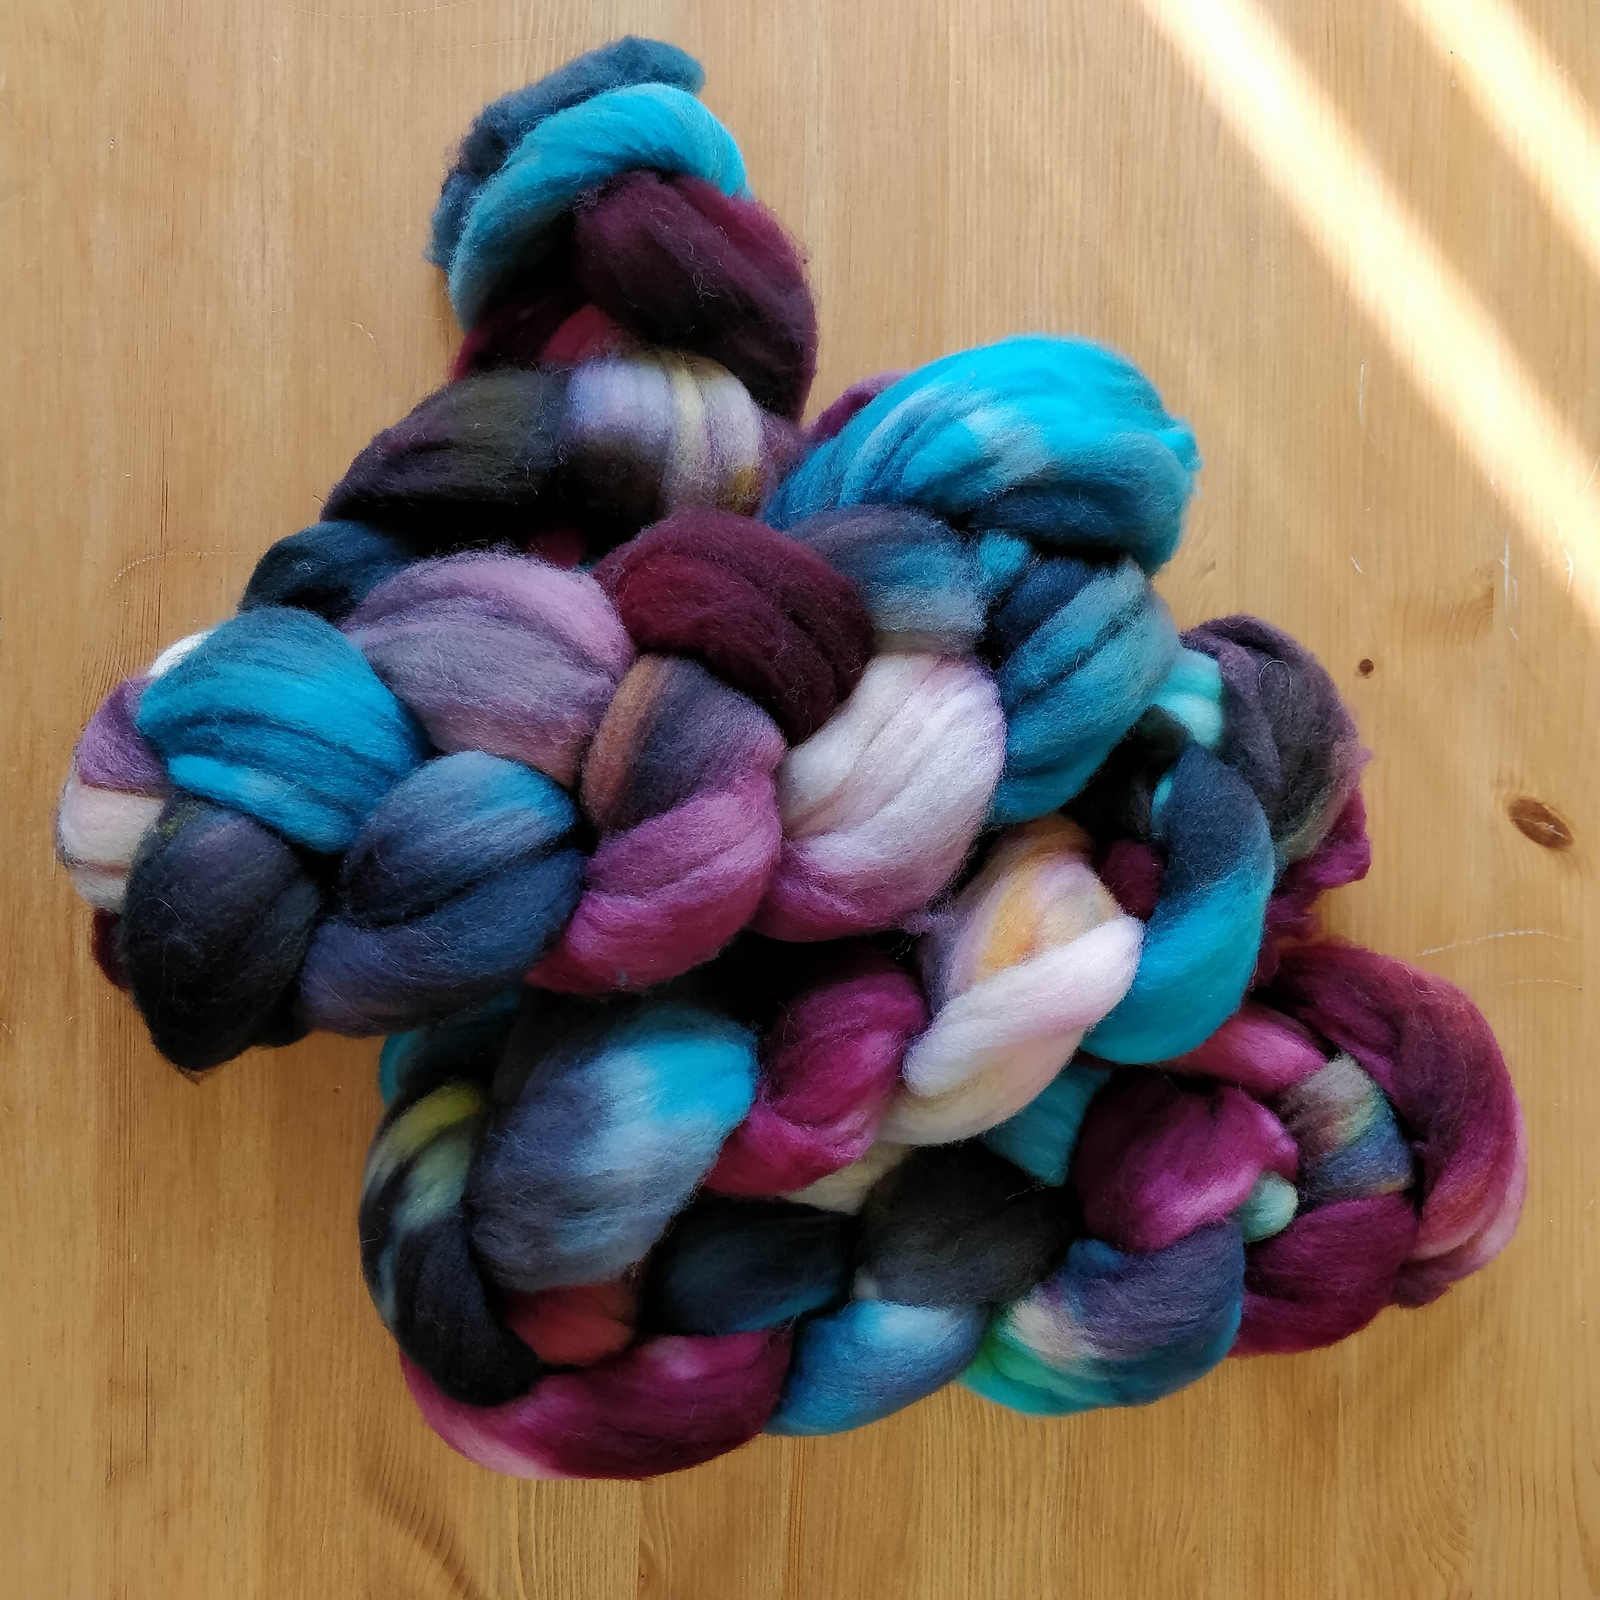 Eight ounces of Targee wool in teal and pink